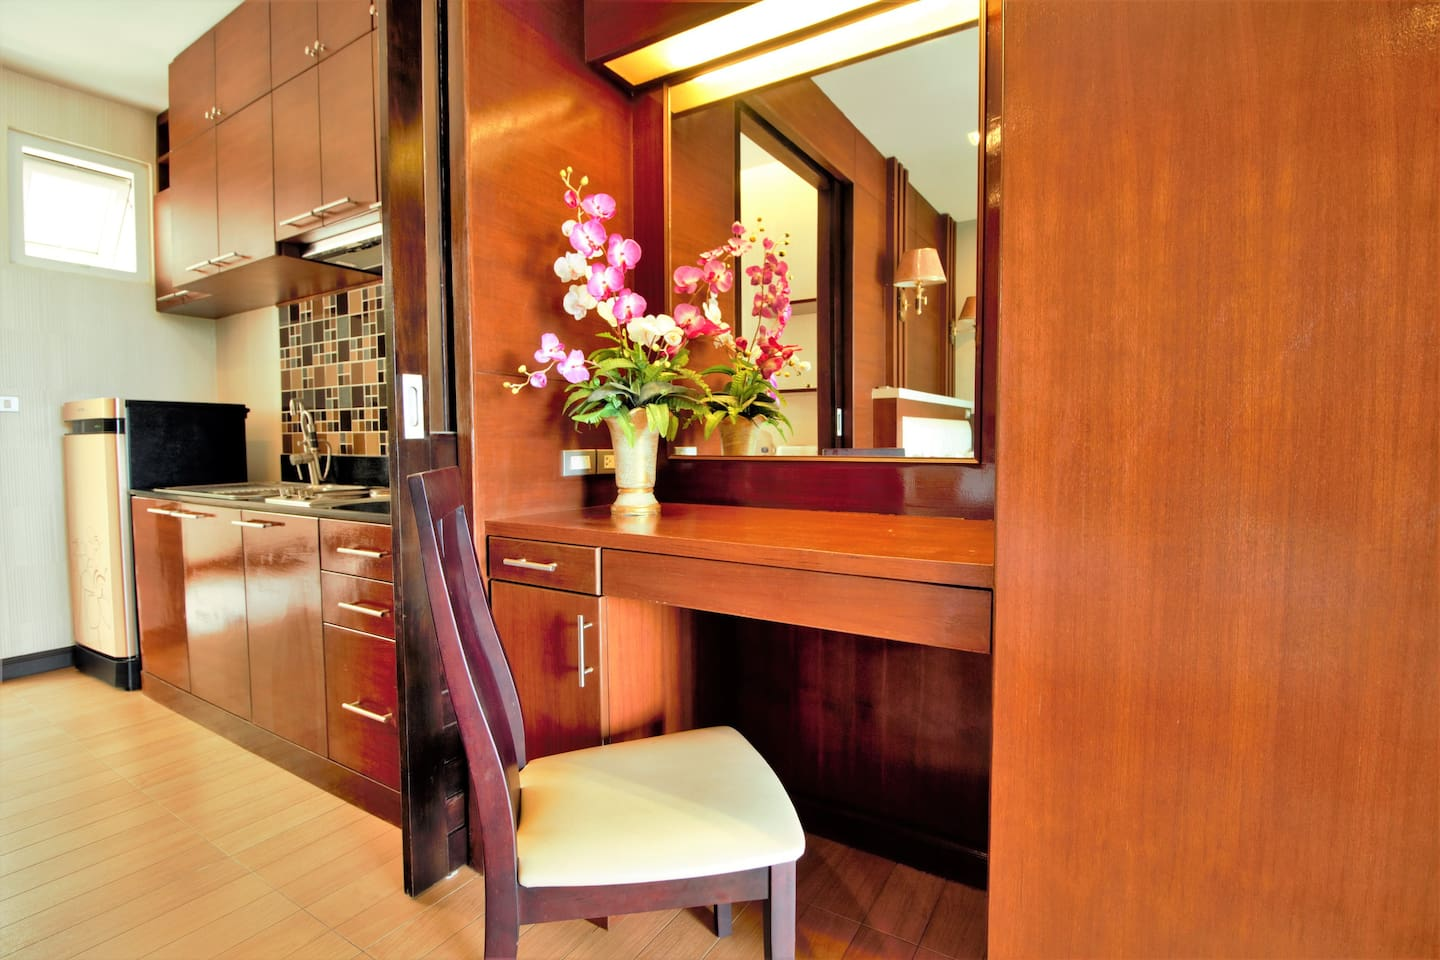 Vanity desk for your daily make-up and sliding doors to separate the kitchen